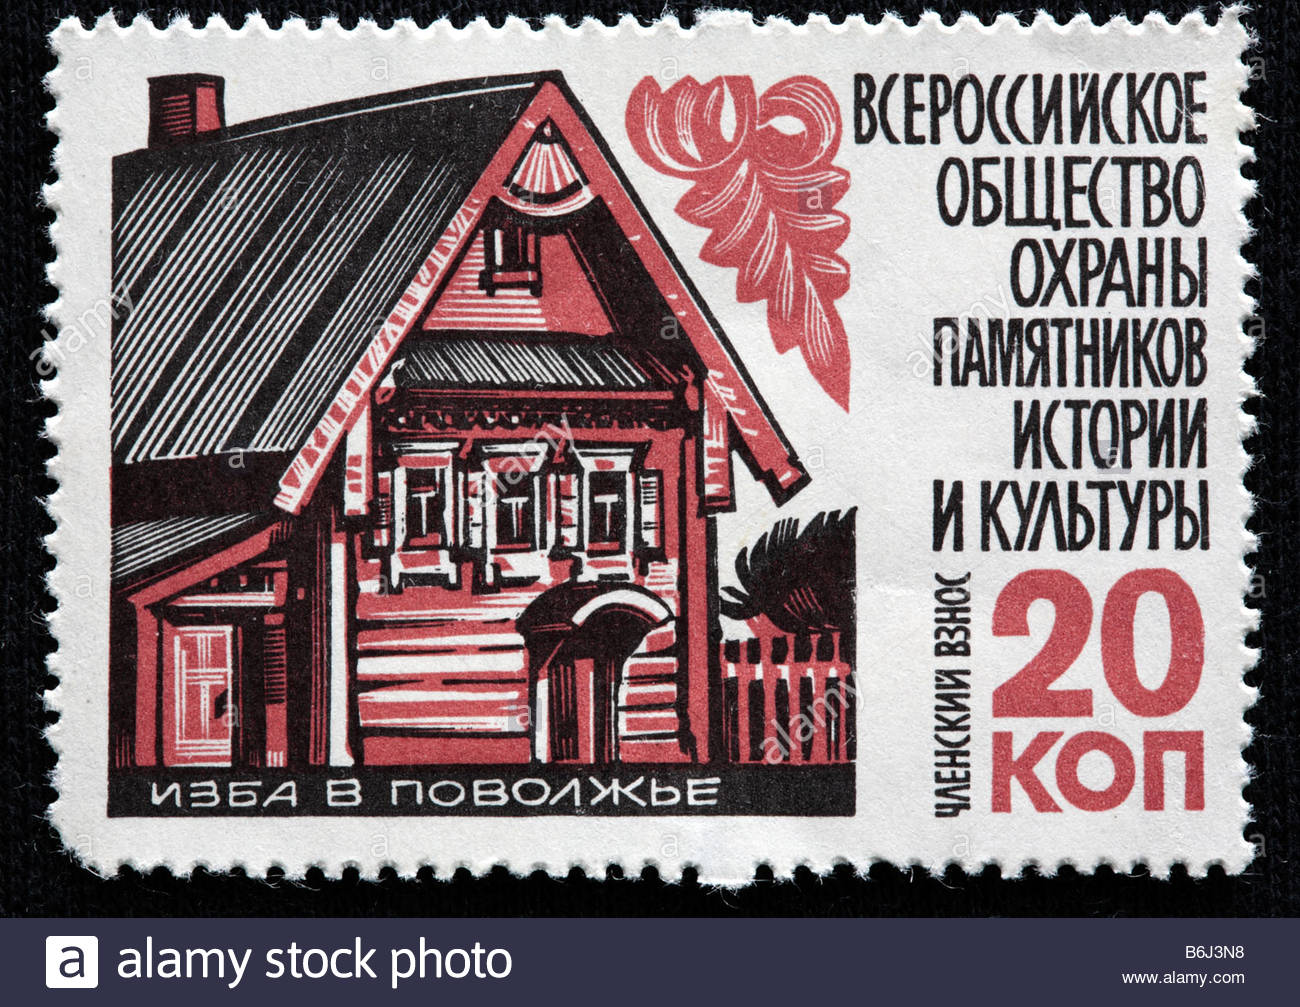 Russian traditional wooden house in Volga region, postage stamp, USSR - Stock Image